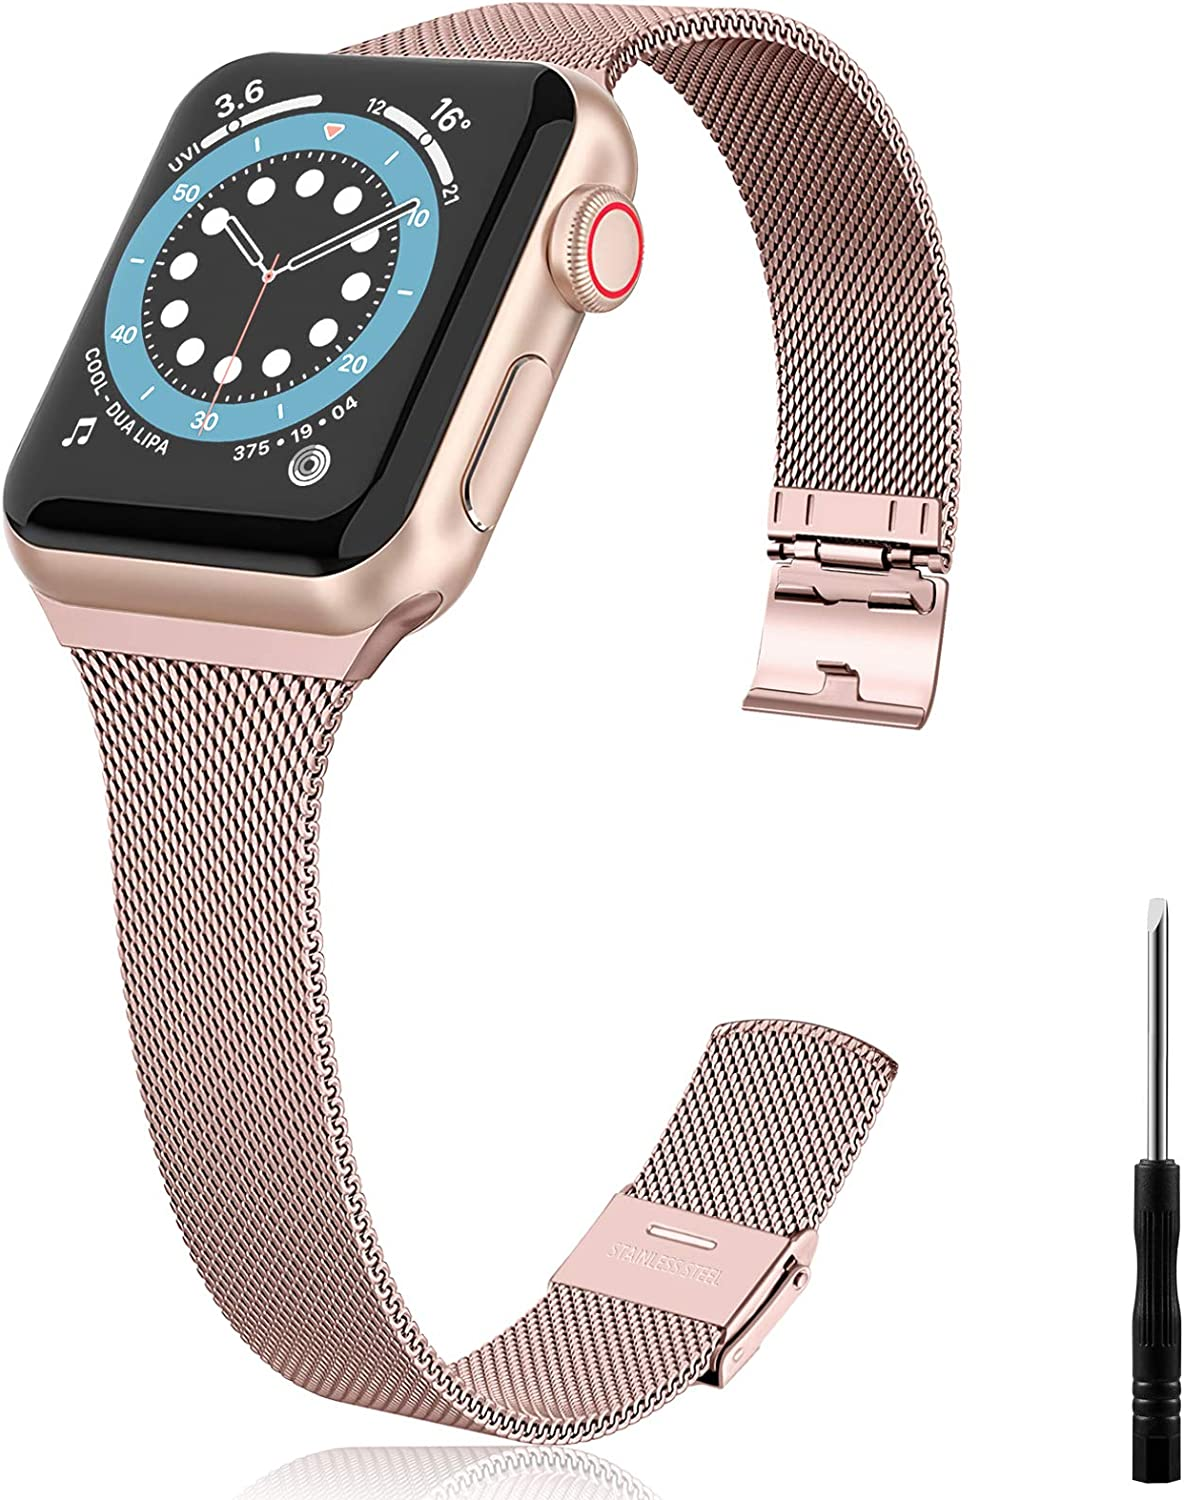 Vcegari Metal Band Compatible with Apple Watch 38mm 40mm Women Men, Slim Narrow Stainless Steel Replacement Wristband Ajustable Strap for iWatch SE & Series 6 5 4 3 2 1, Rose Gold